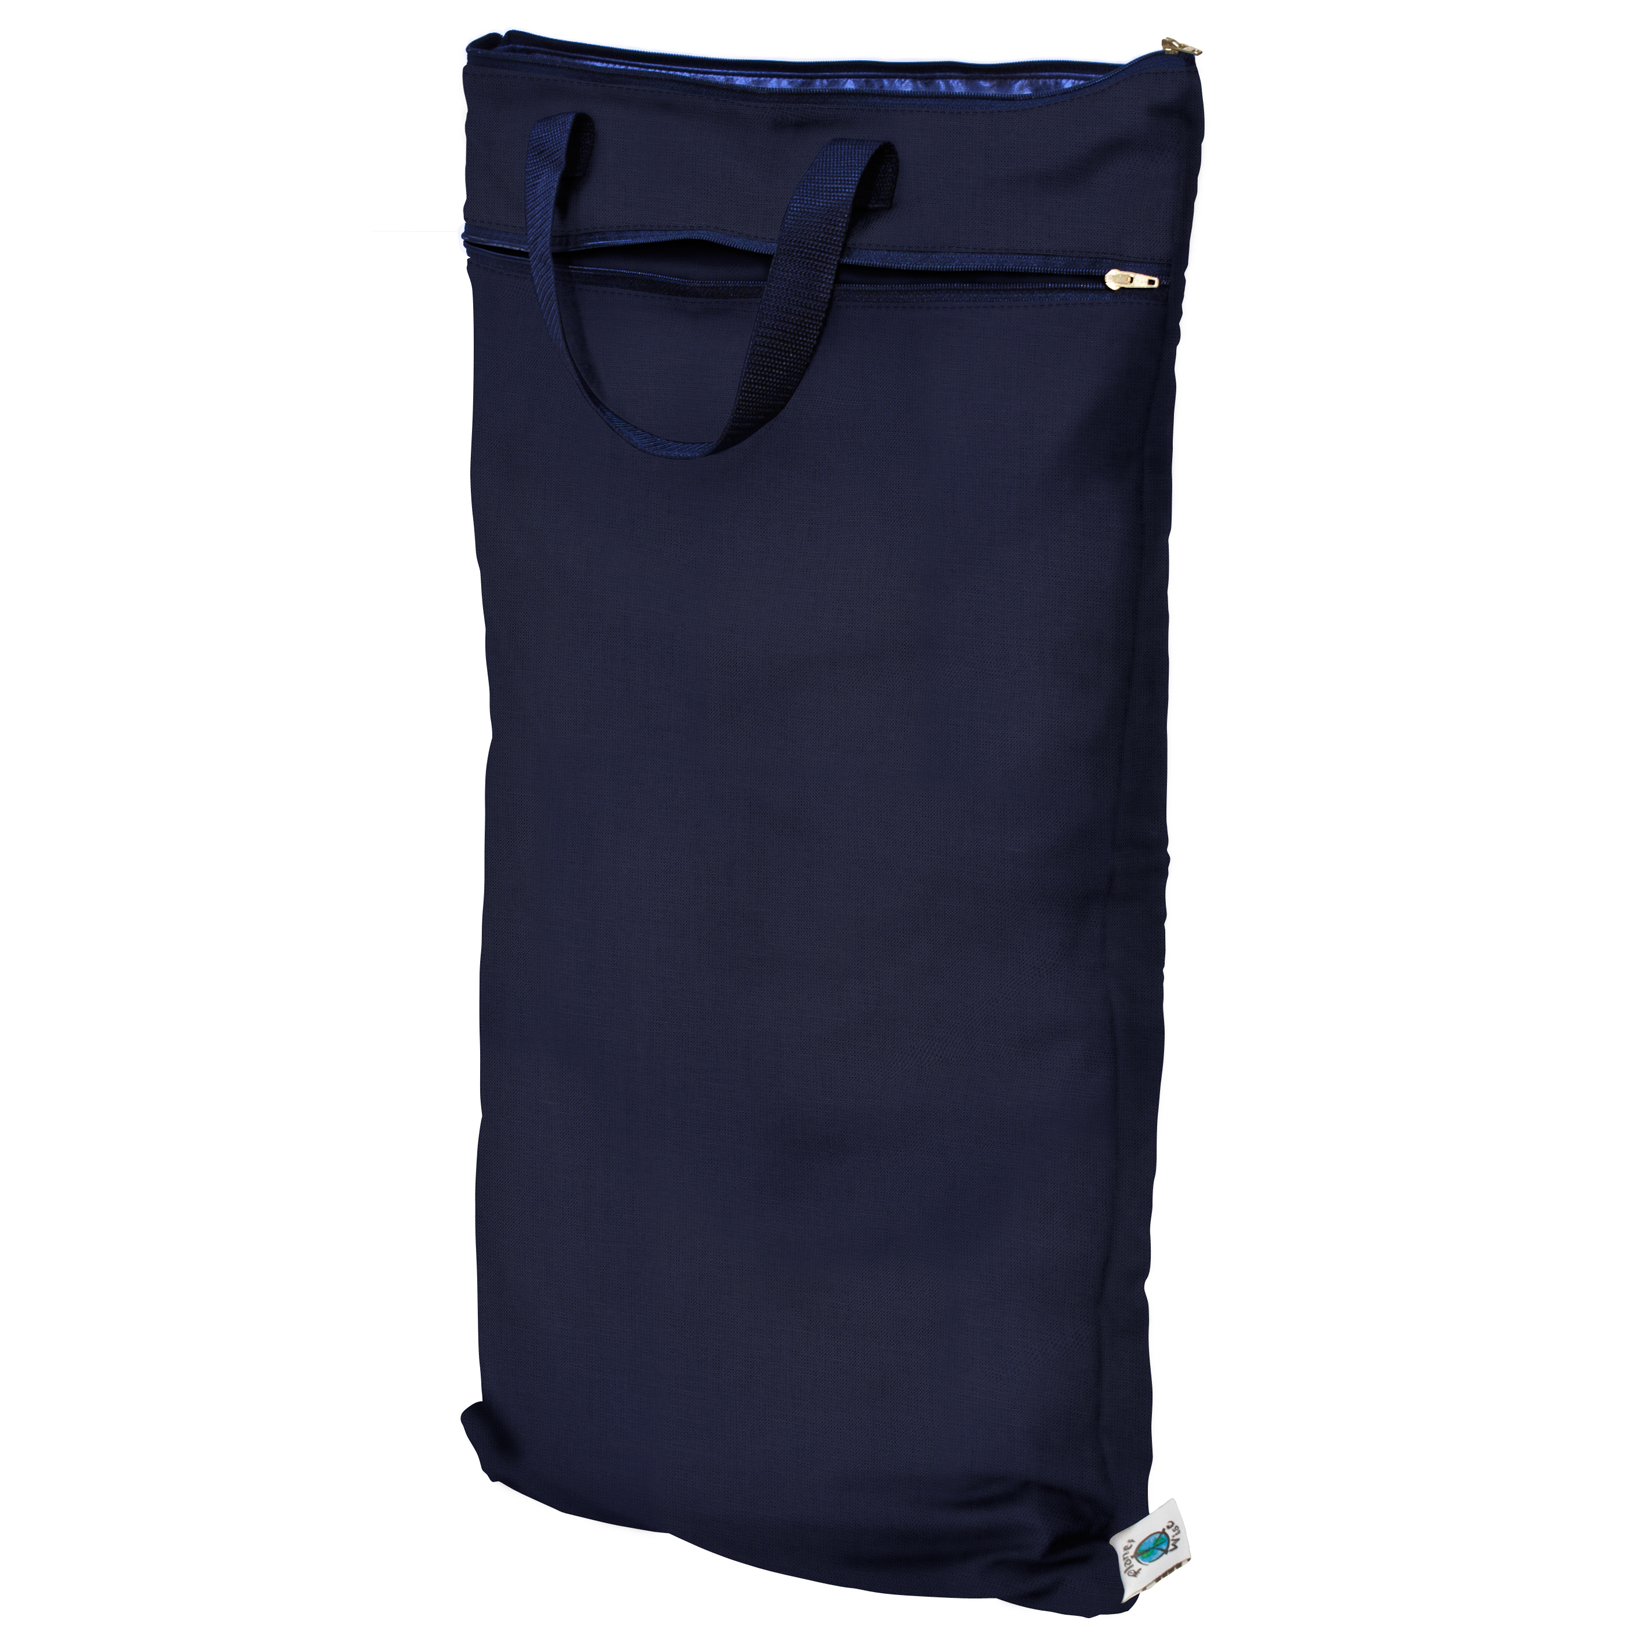 planet wise hanging wet/dry bag - Navy